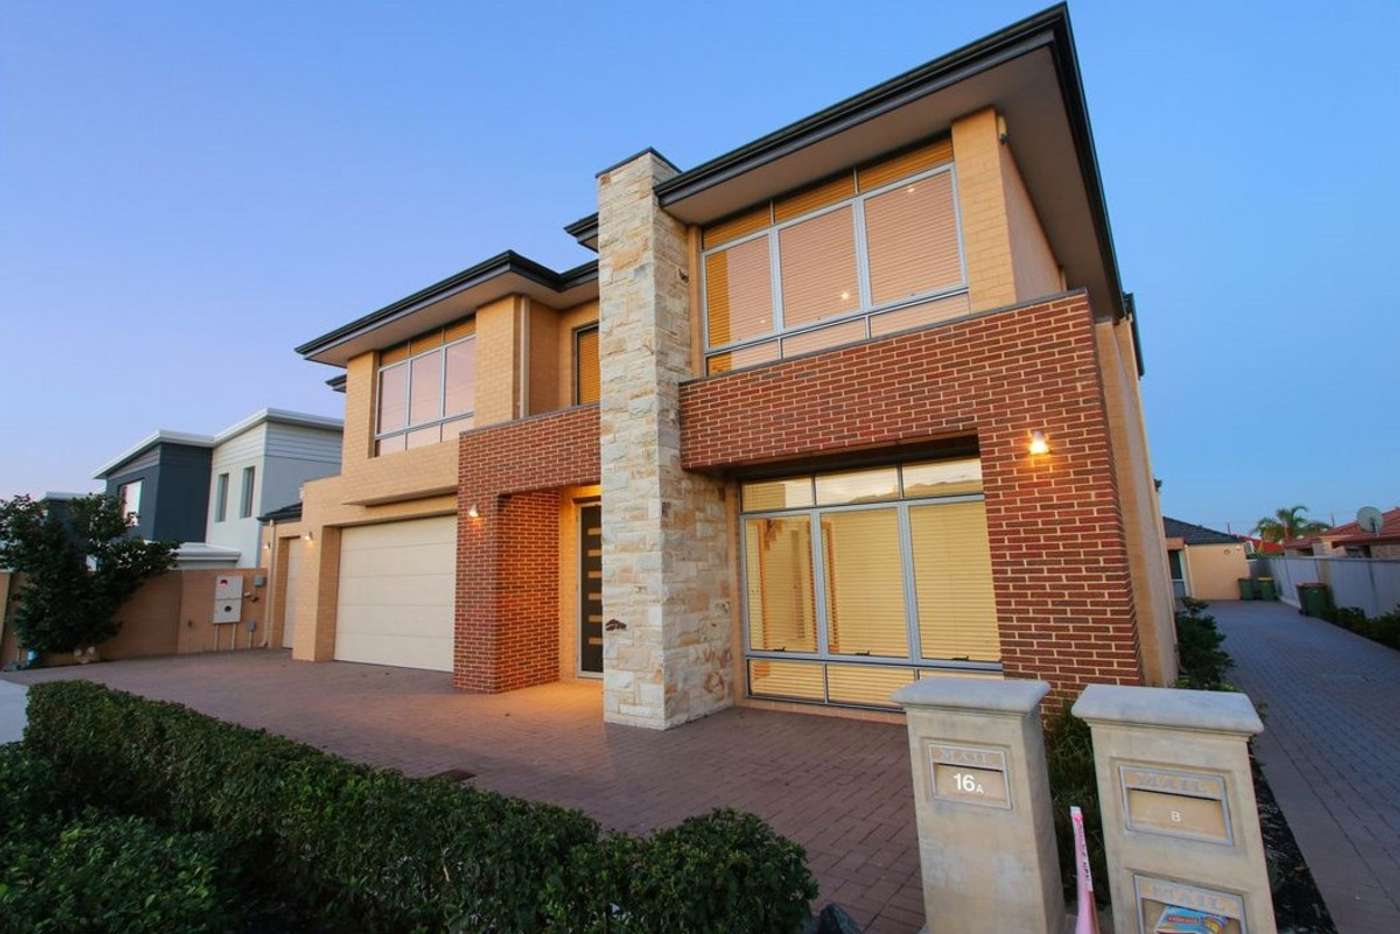 Main view of Homely house listing, 16 Hewton Street, Morley WA 6062